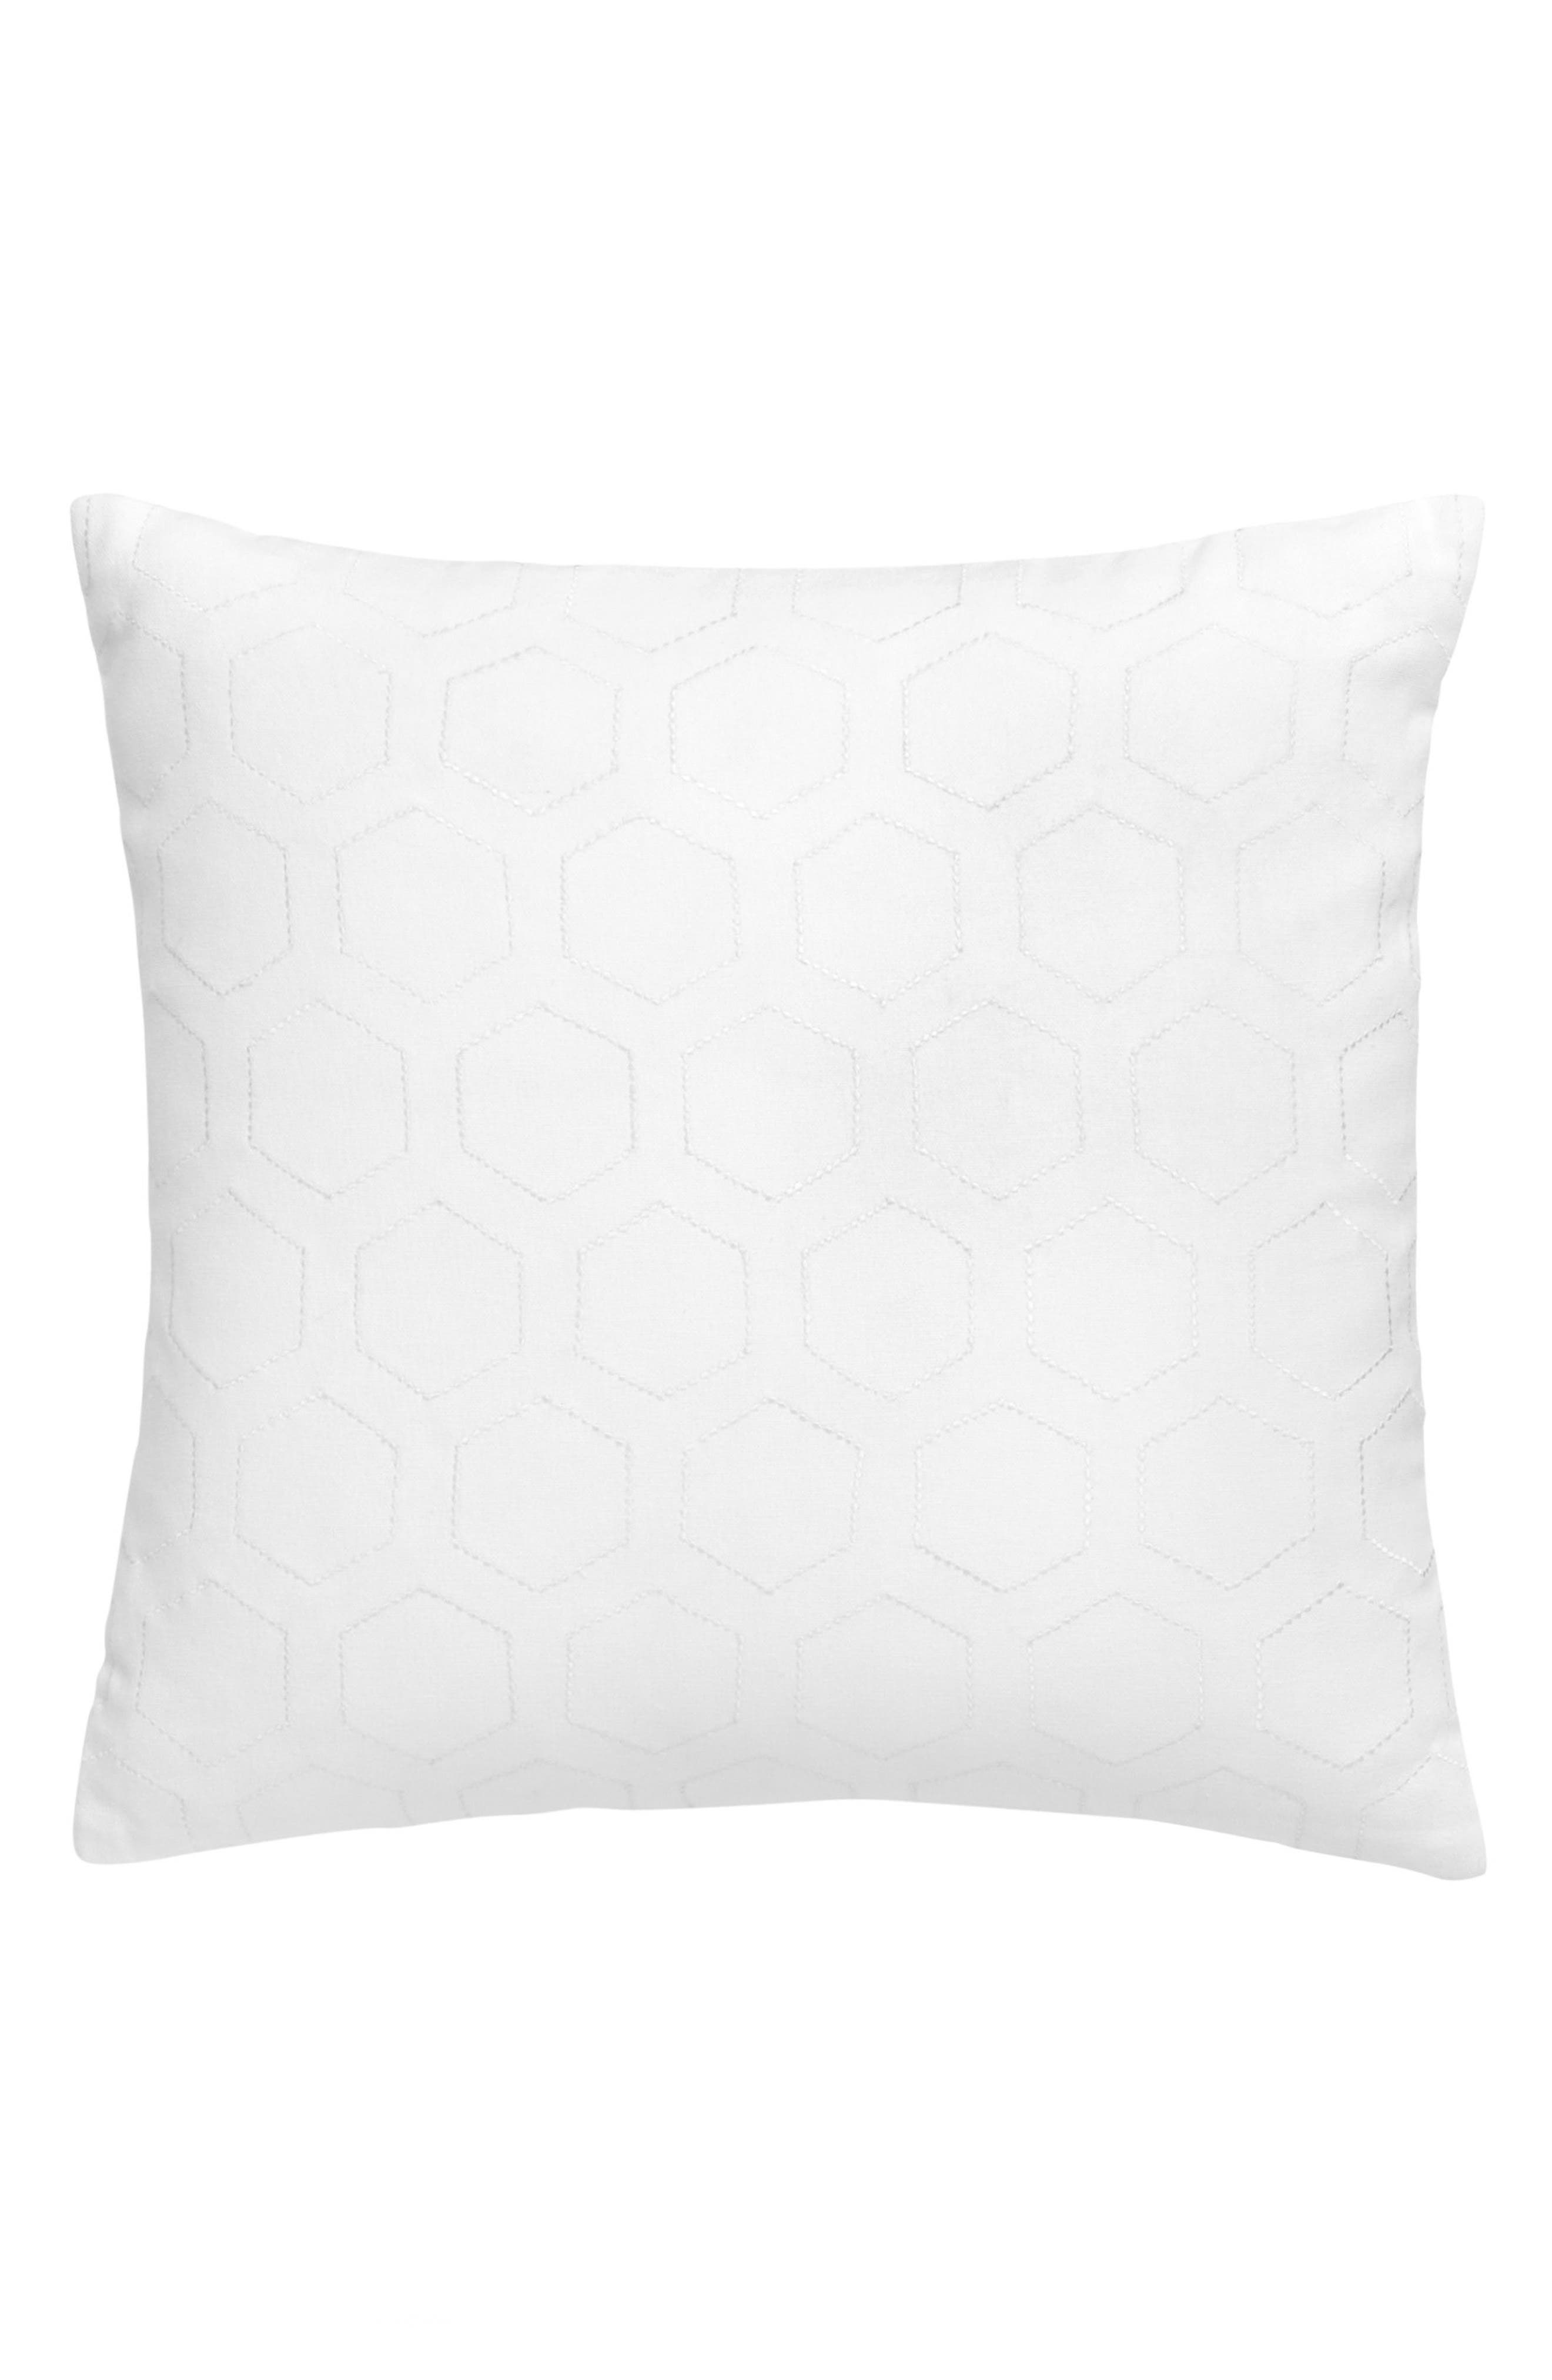 Blackpoint Hex Accent Pillow,                         Main,                         color, 100